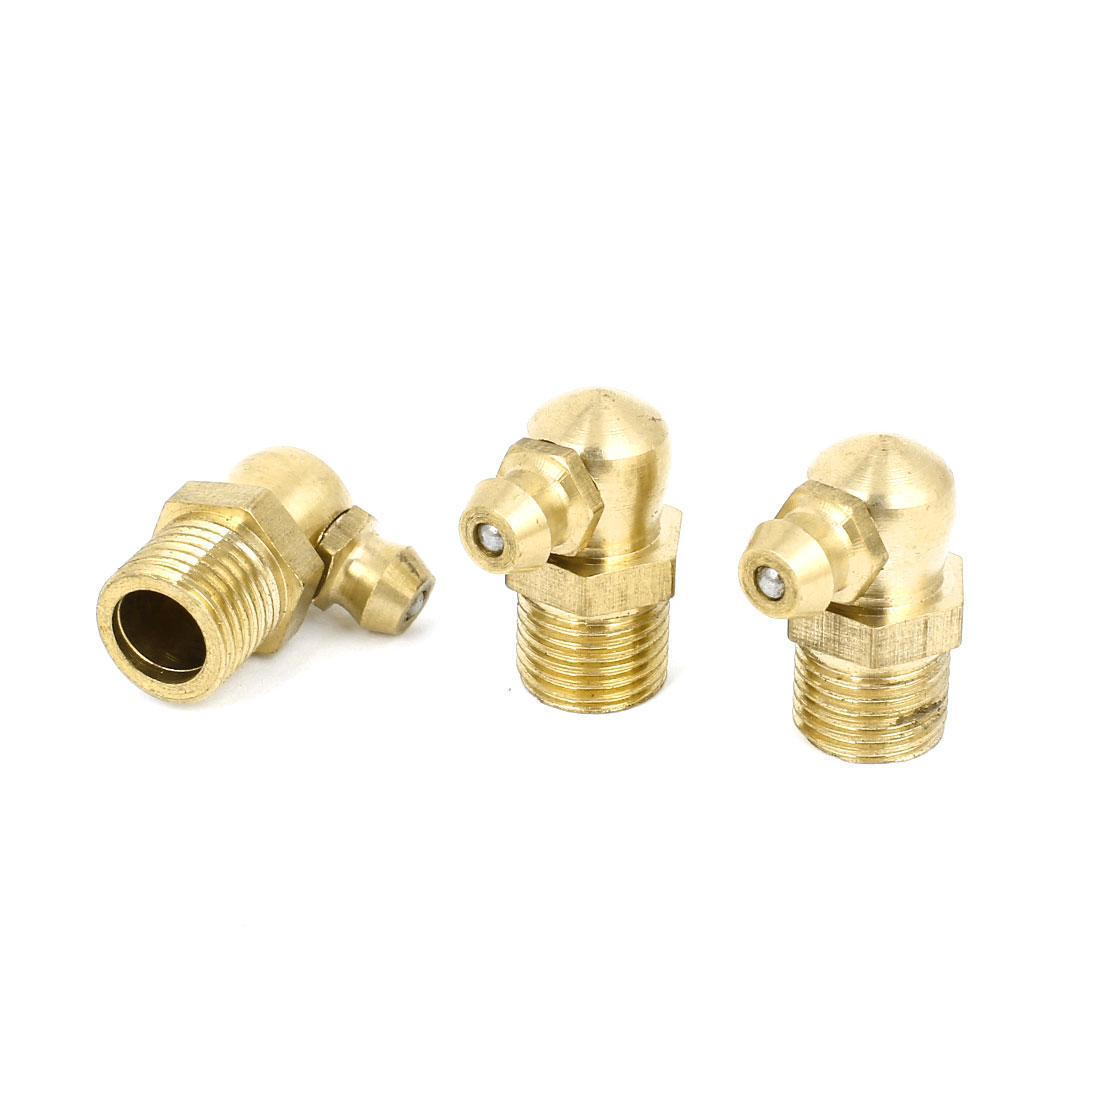 10mm Dia Male Thread 90 Degree Hydraulic Grease Nipple Fitting Brass Tone 3 Pcs